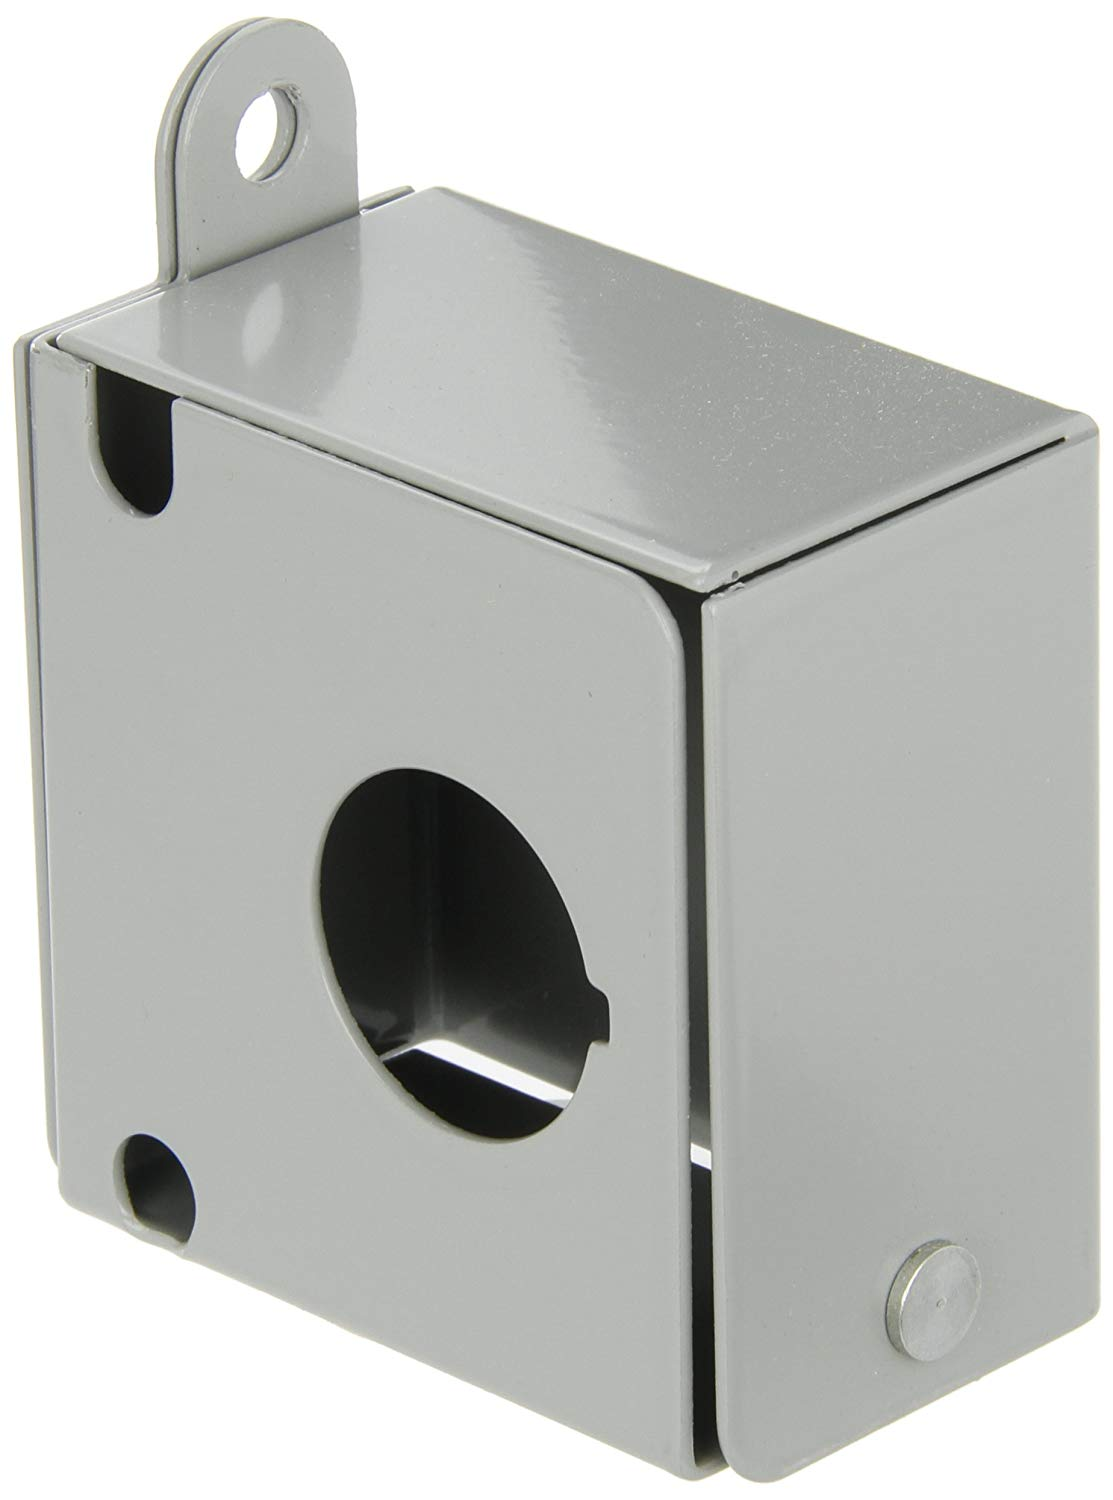 Accessory for CL52, 30mm Padlock Cover for use on Pushbuttons, Selector Switches, And Non Illuminated Mushroom Head Operators Cover Restricts Access To Operators, But It Does Not Force Mushroom Head To Remain in the Latched Position Metal,Painted Steel